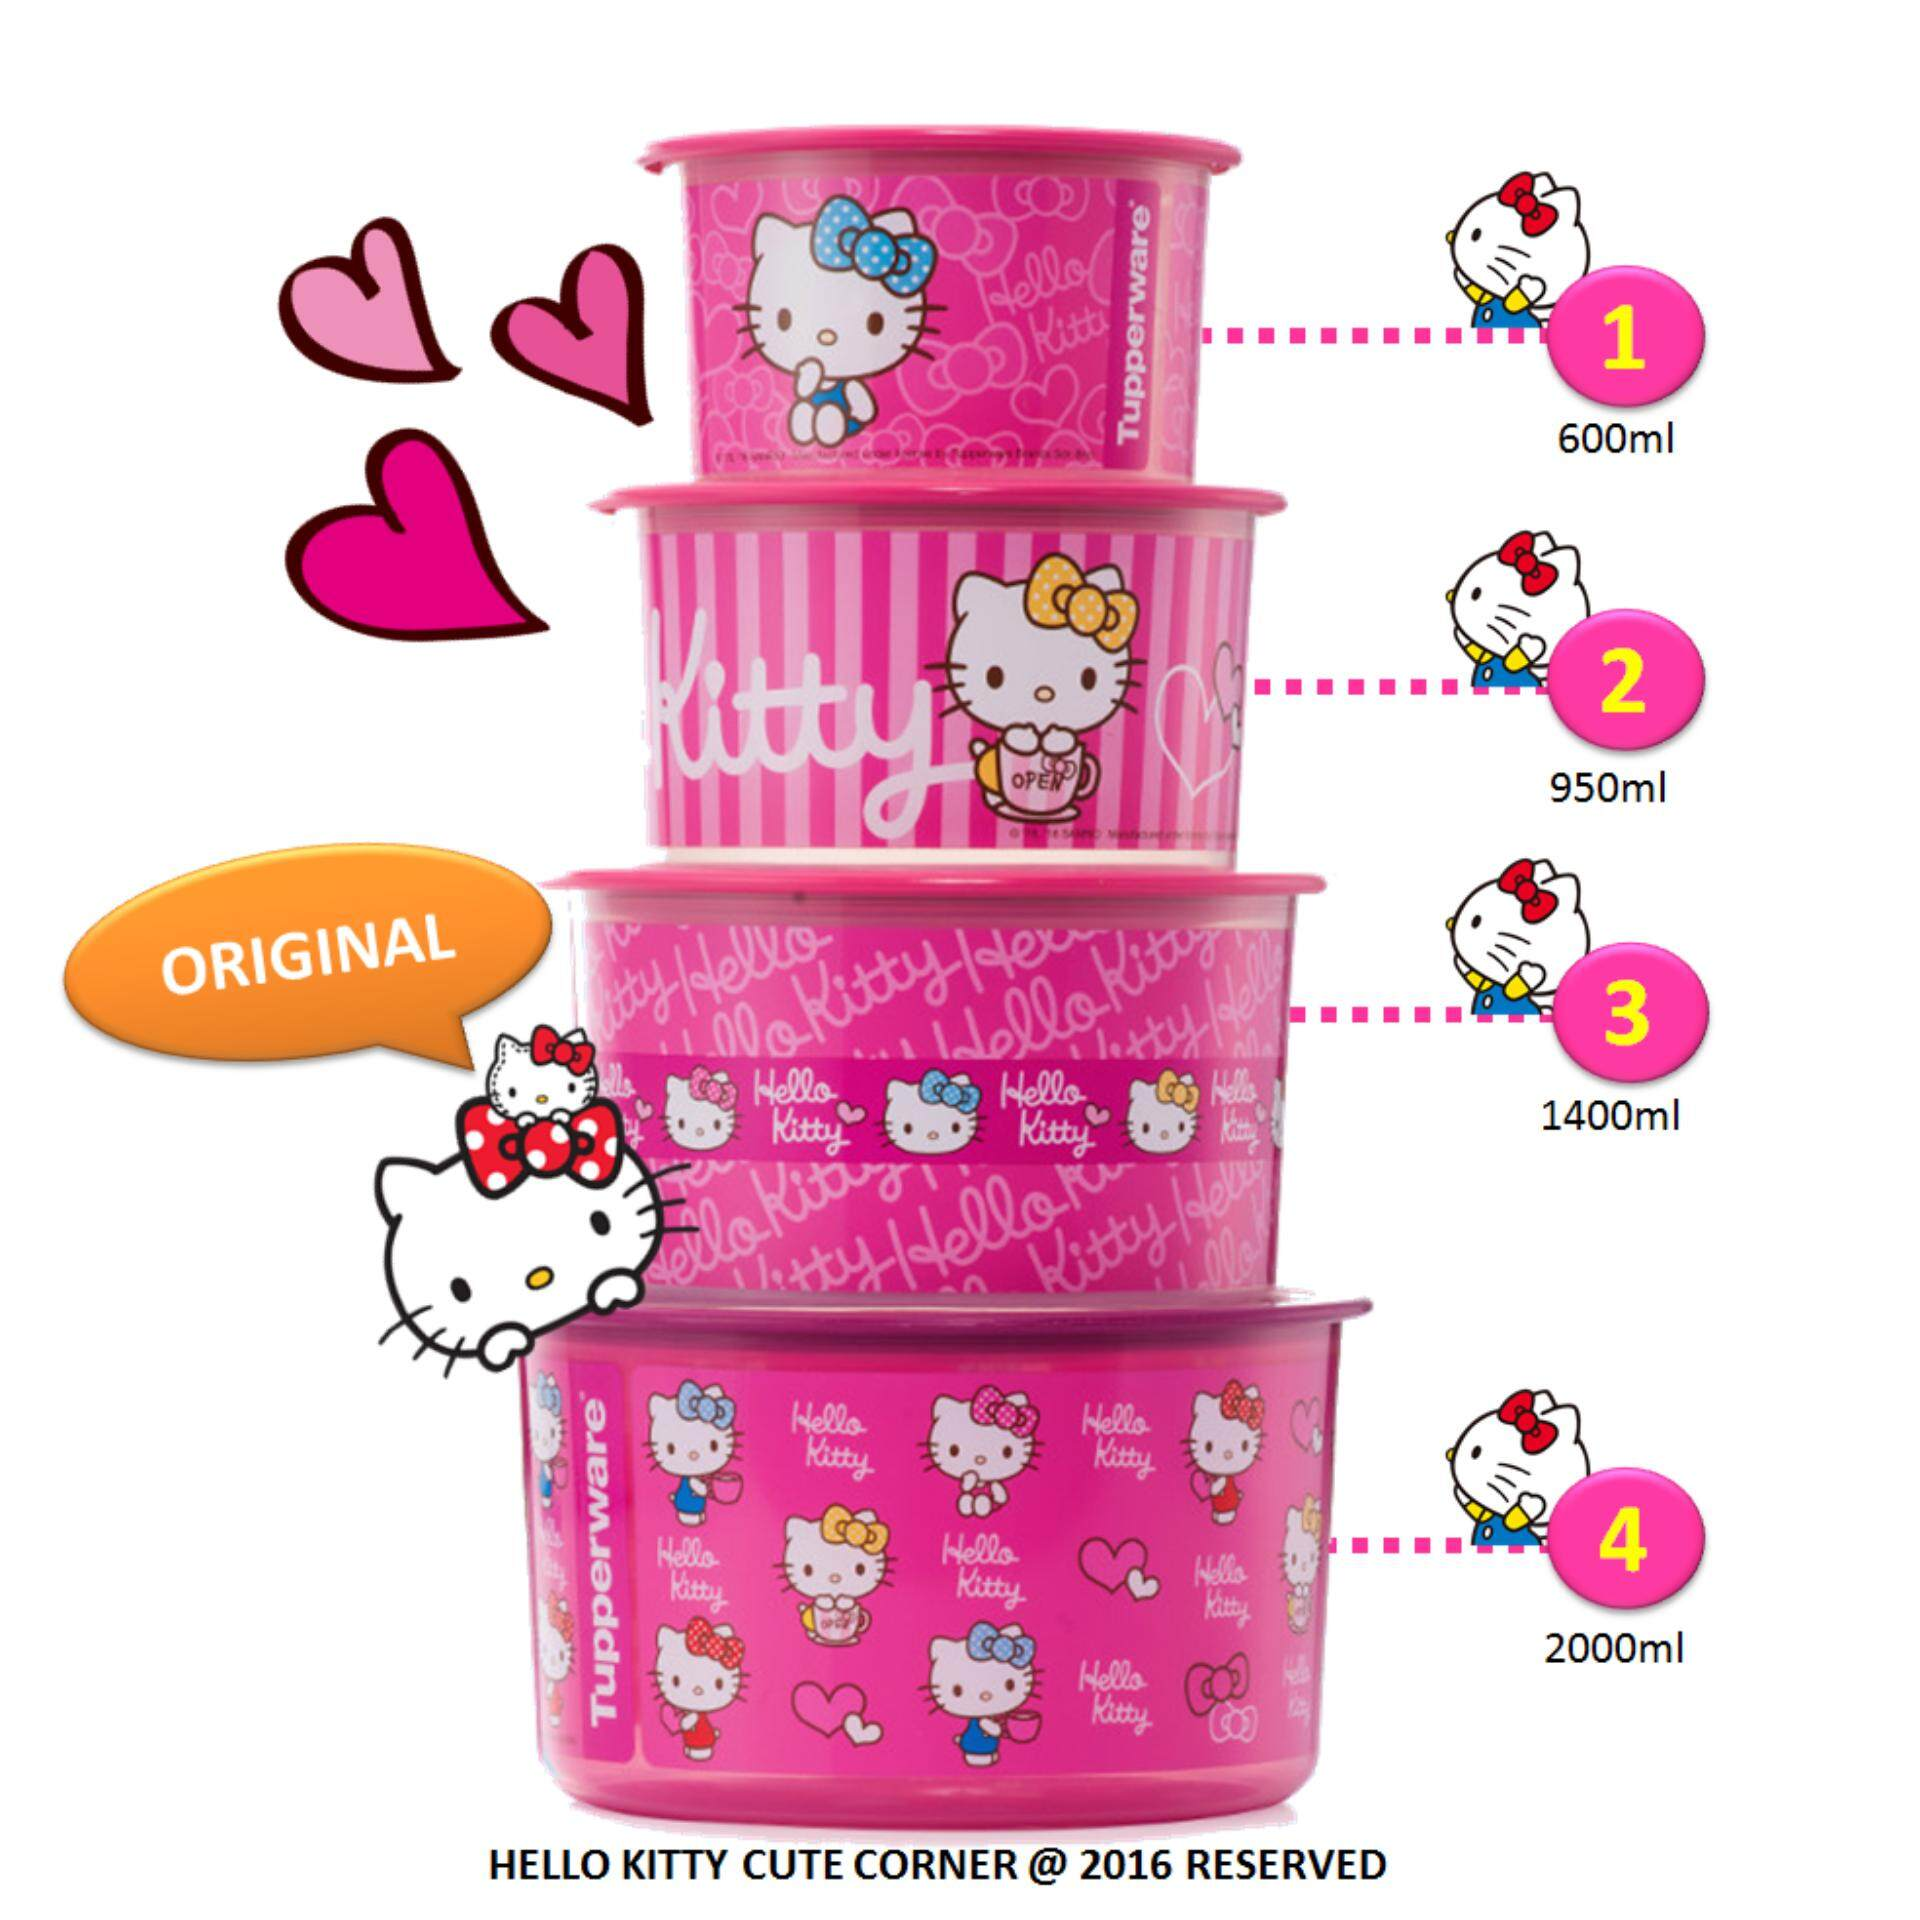 Tupperware limited edition hello kitty one touch (4) full set.